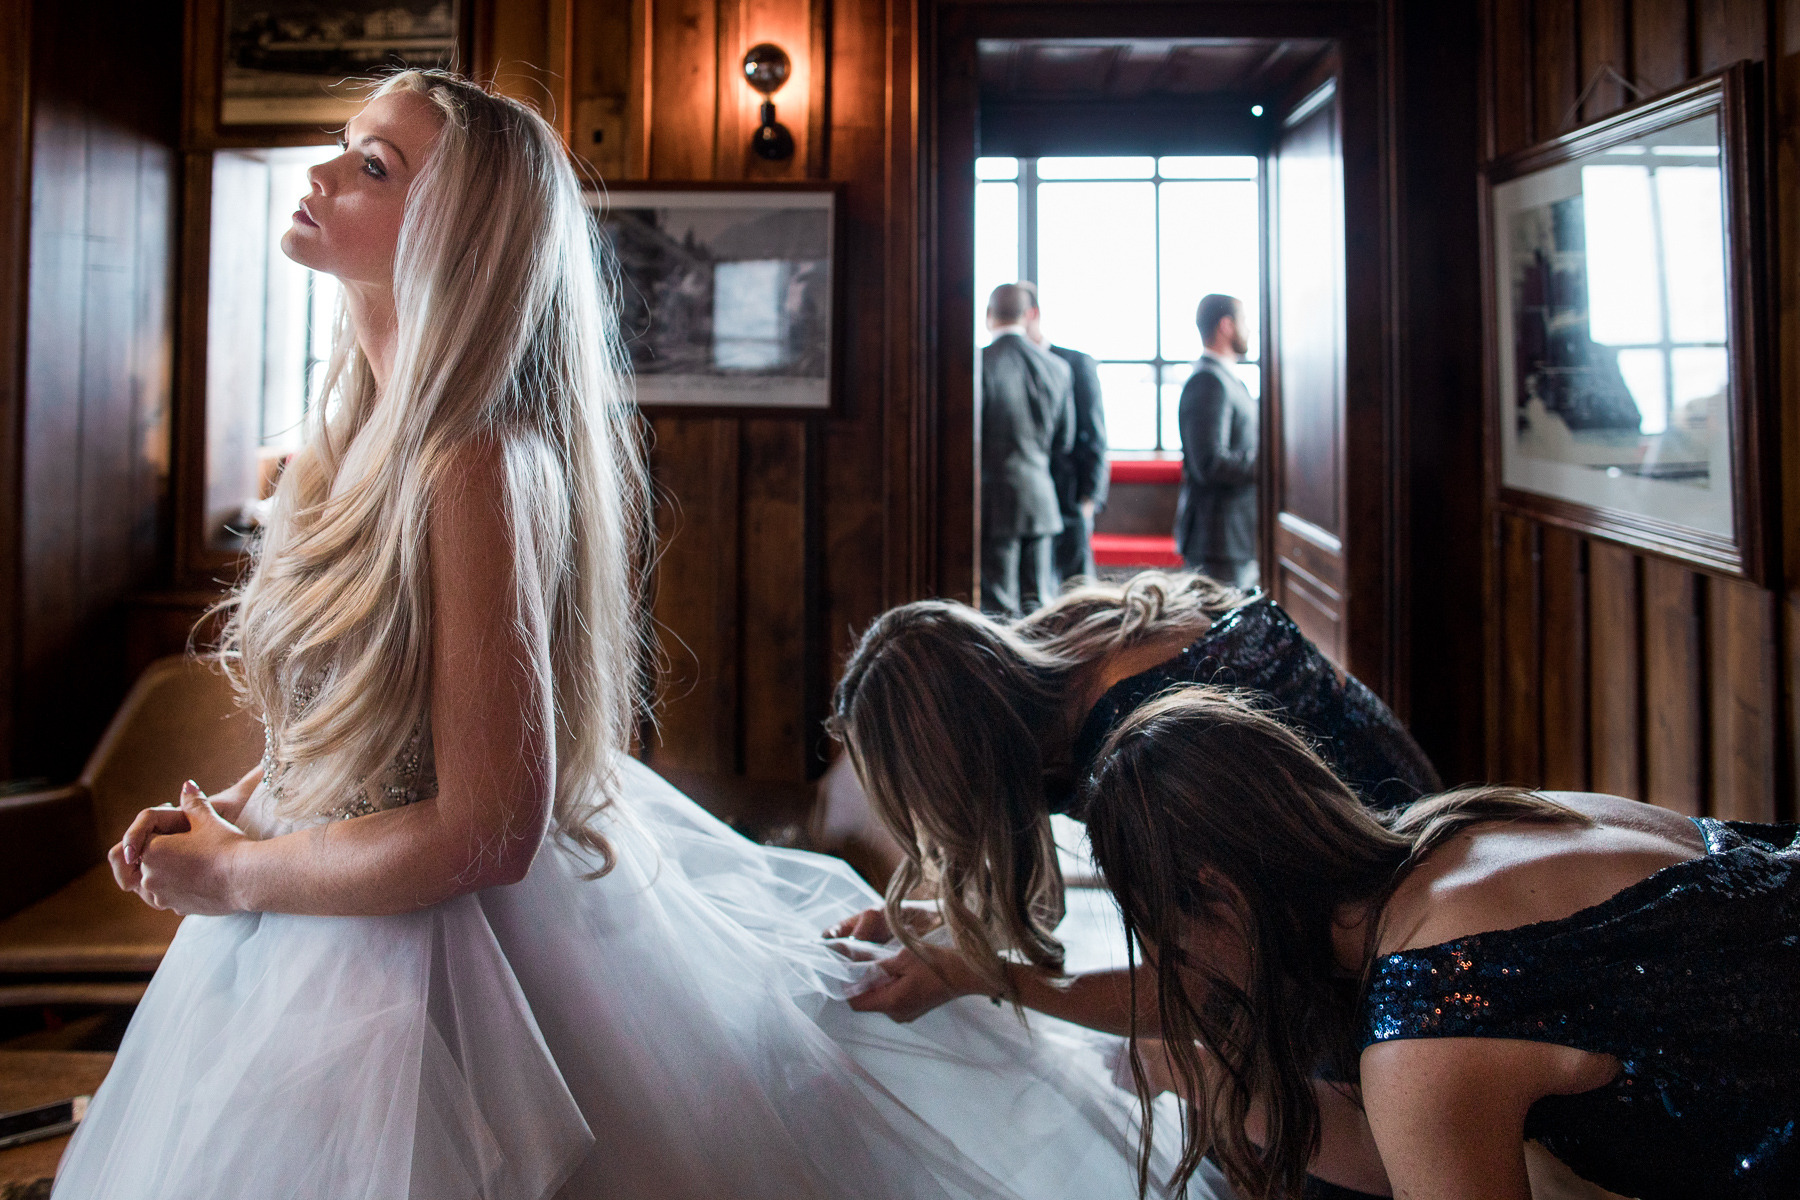 The bride and her bridemaids before elopement in Chamonix-Mont-Blanc, France